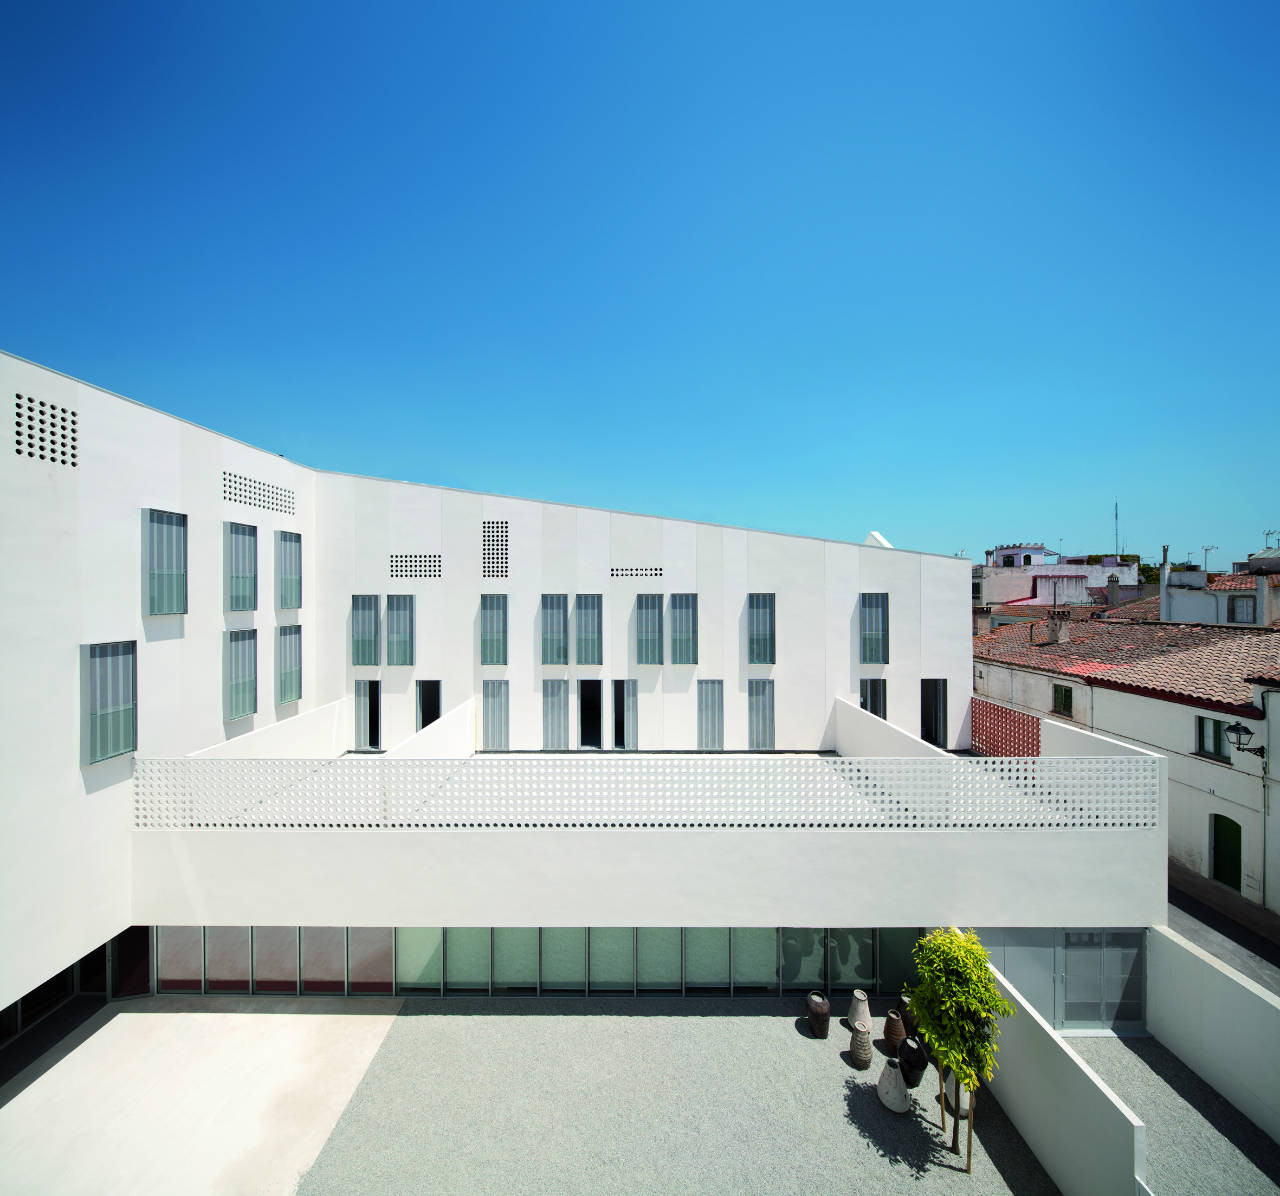 14 Social Housing Units In Barcelona / Batlle & Roig Architects, © A. Flajszer